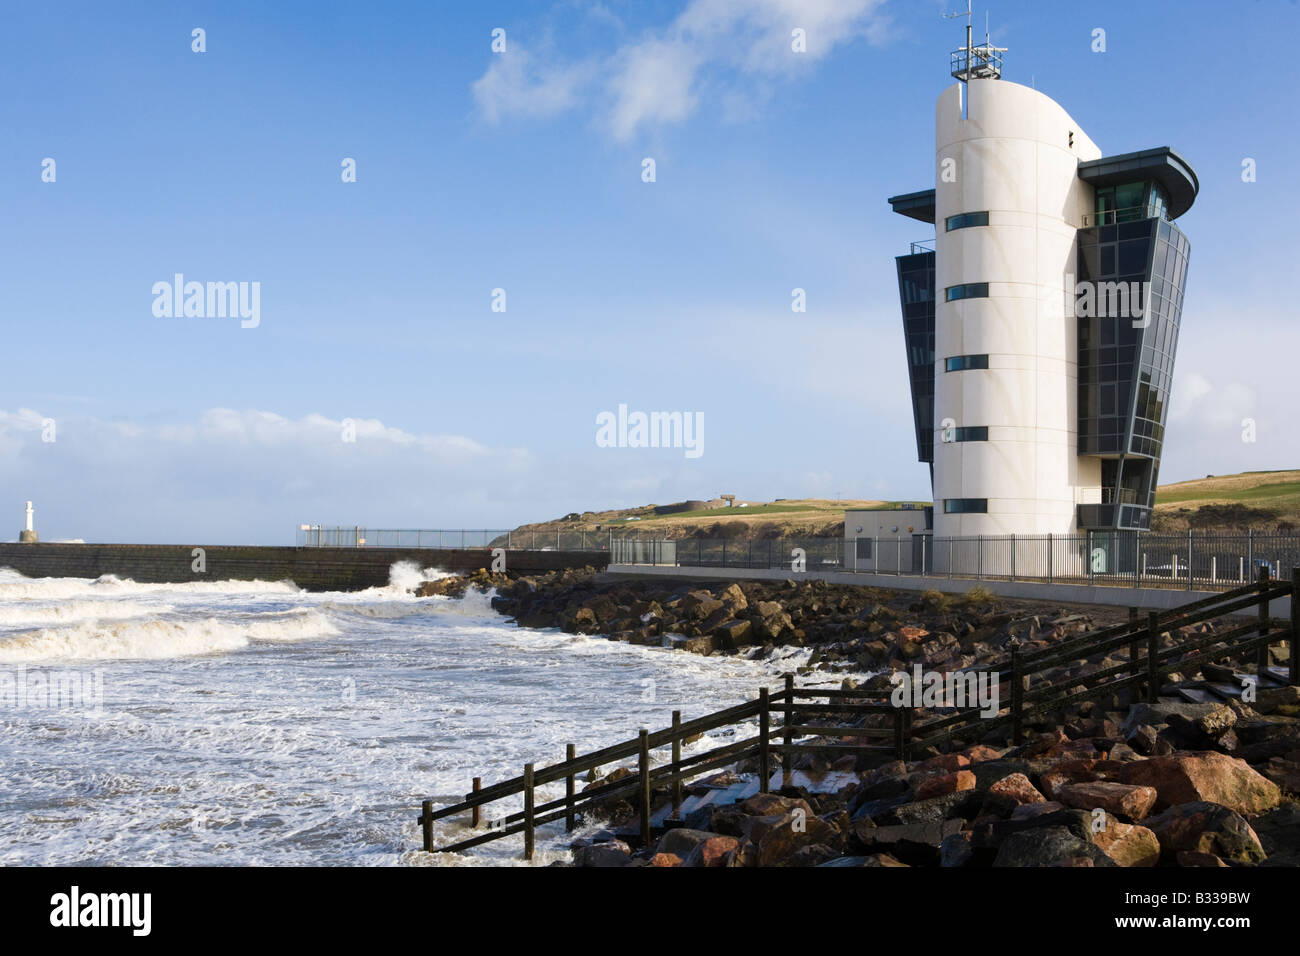 The Marine Operations Centre (opened in 2006) at Aberdeen Harbour, Aberdeenshire, Scotland - Stock Image